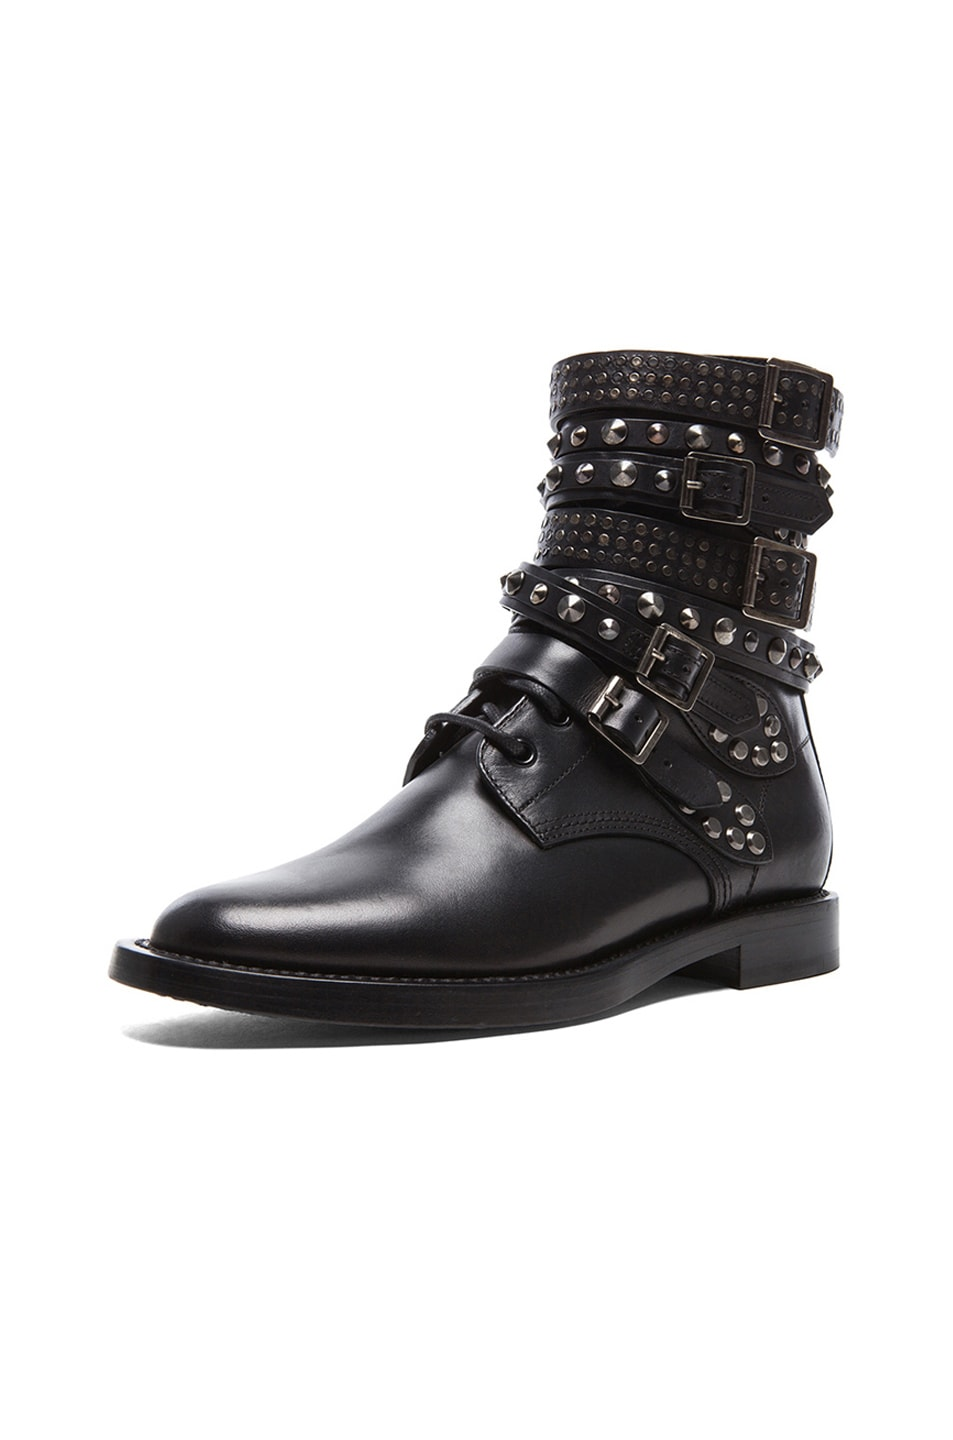 Image 2 of Saint Laurent Rangers Studded Leather Combat Boots in Black